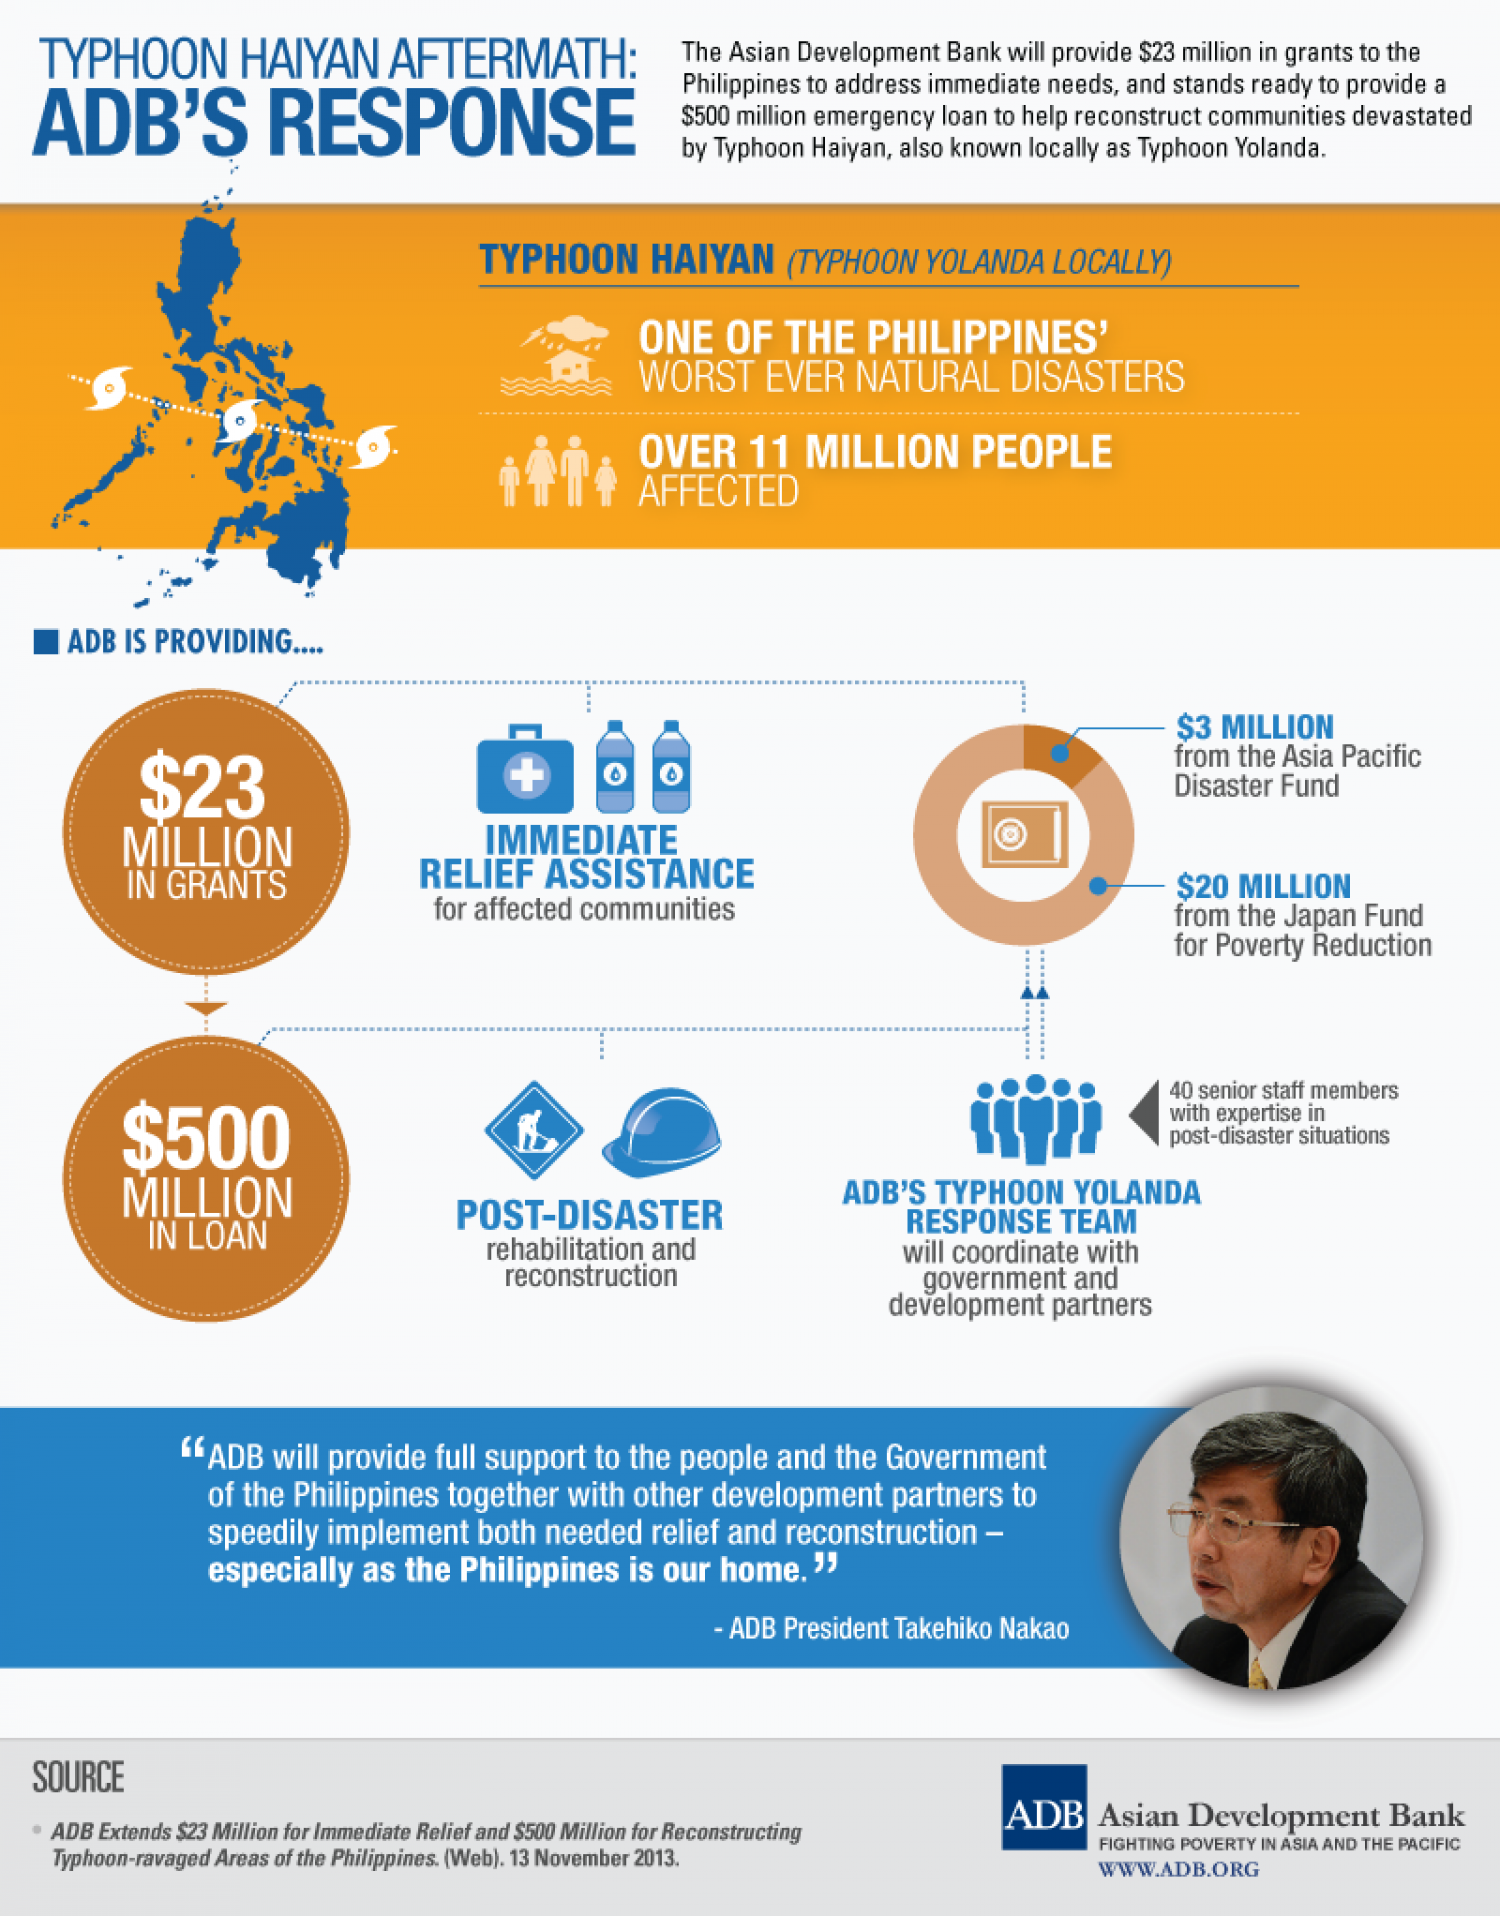 Typhoon Haiyan Aftermath: ADB's Response Infographic